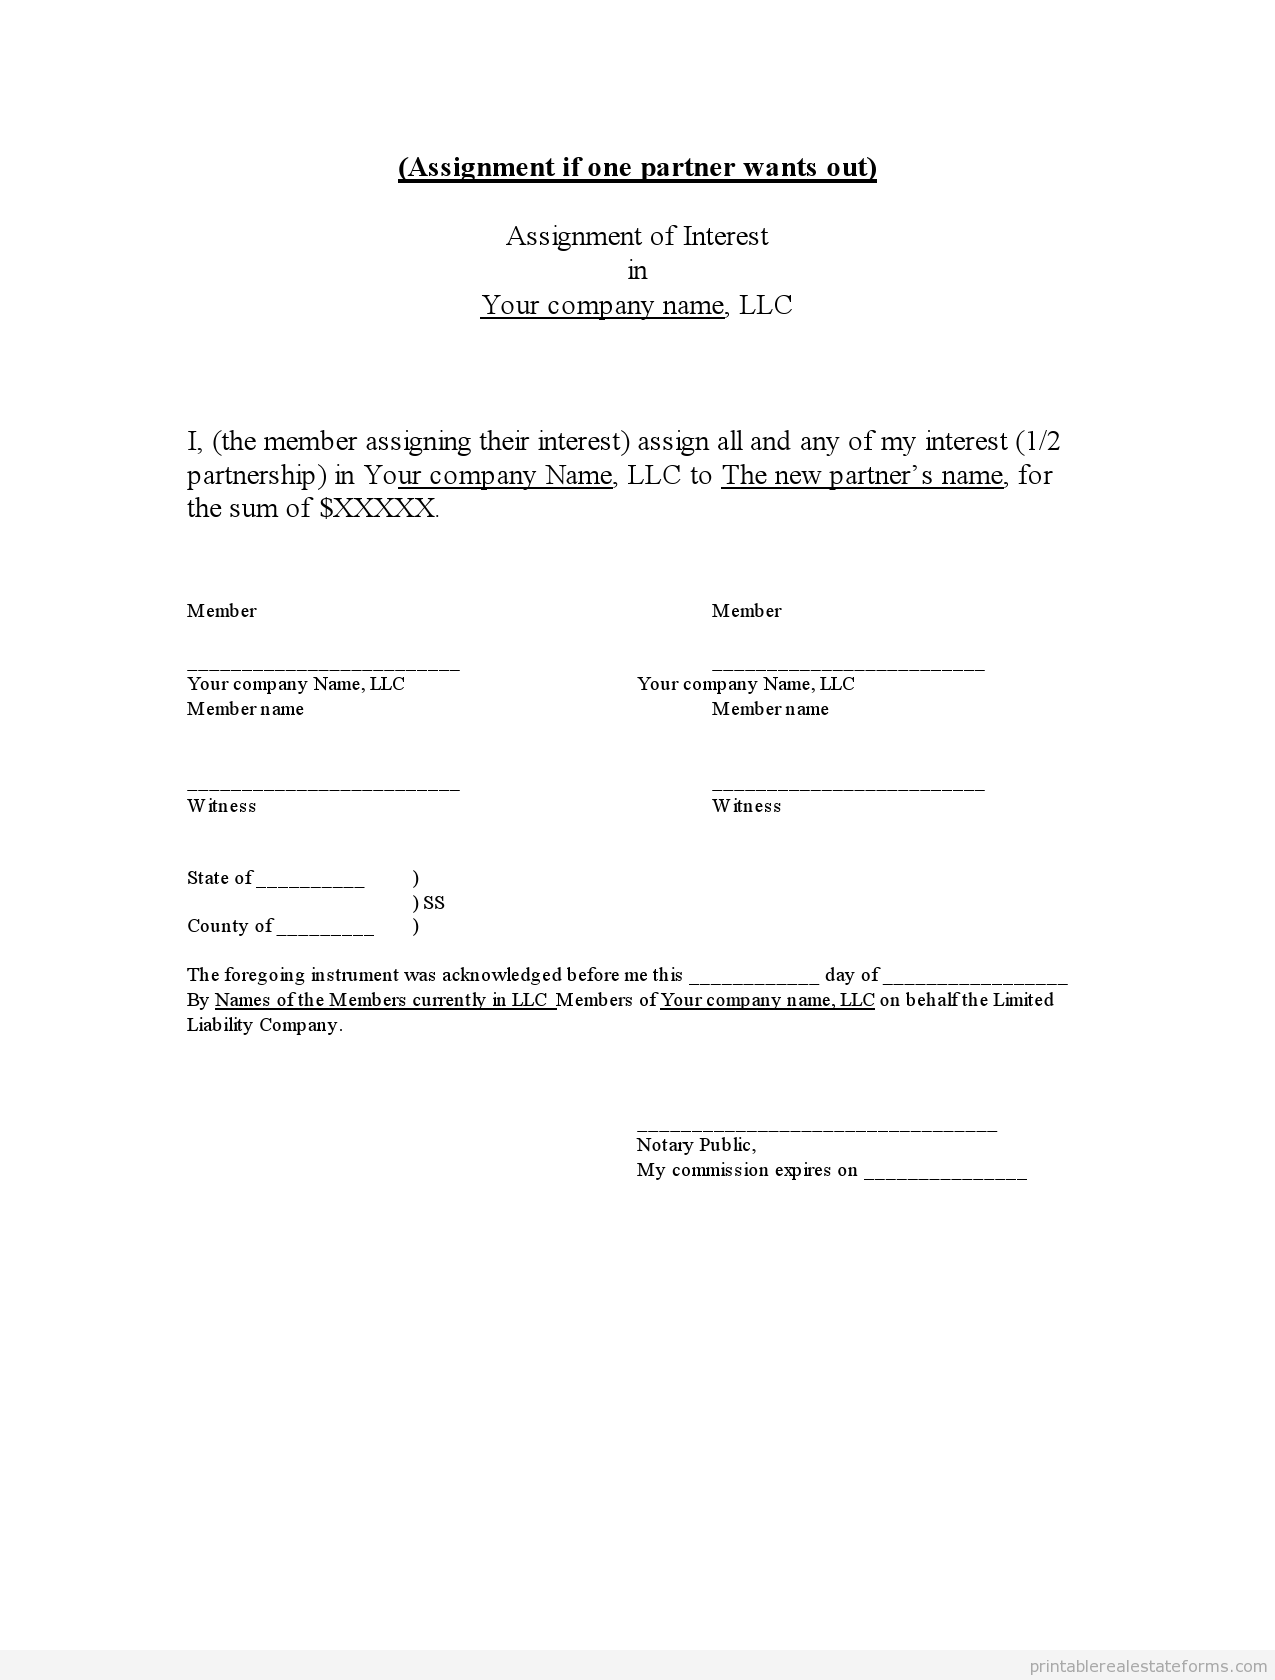 assignment of membership interest agreement